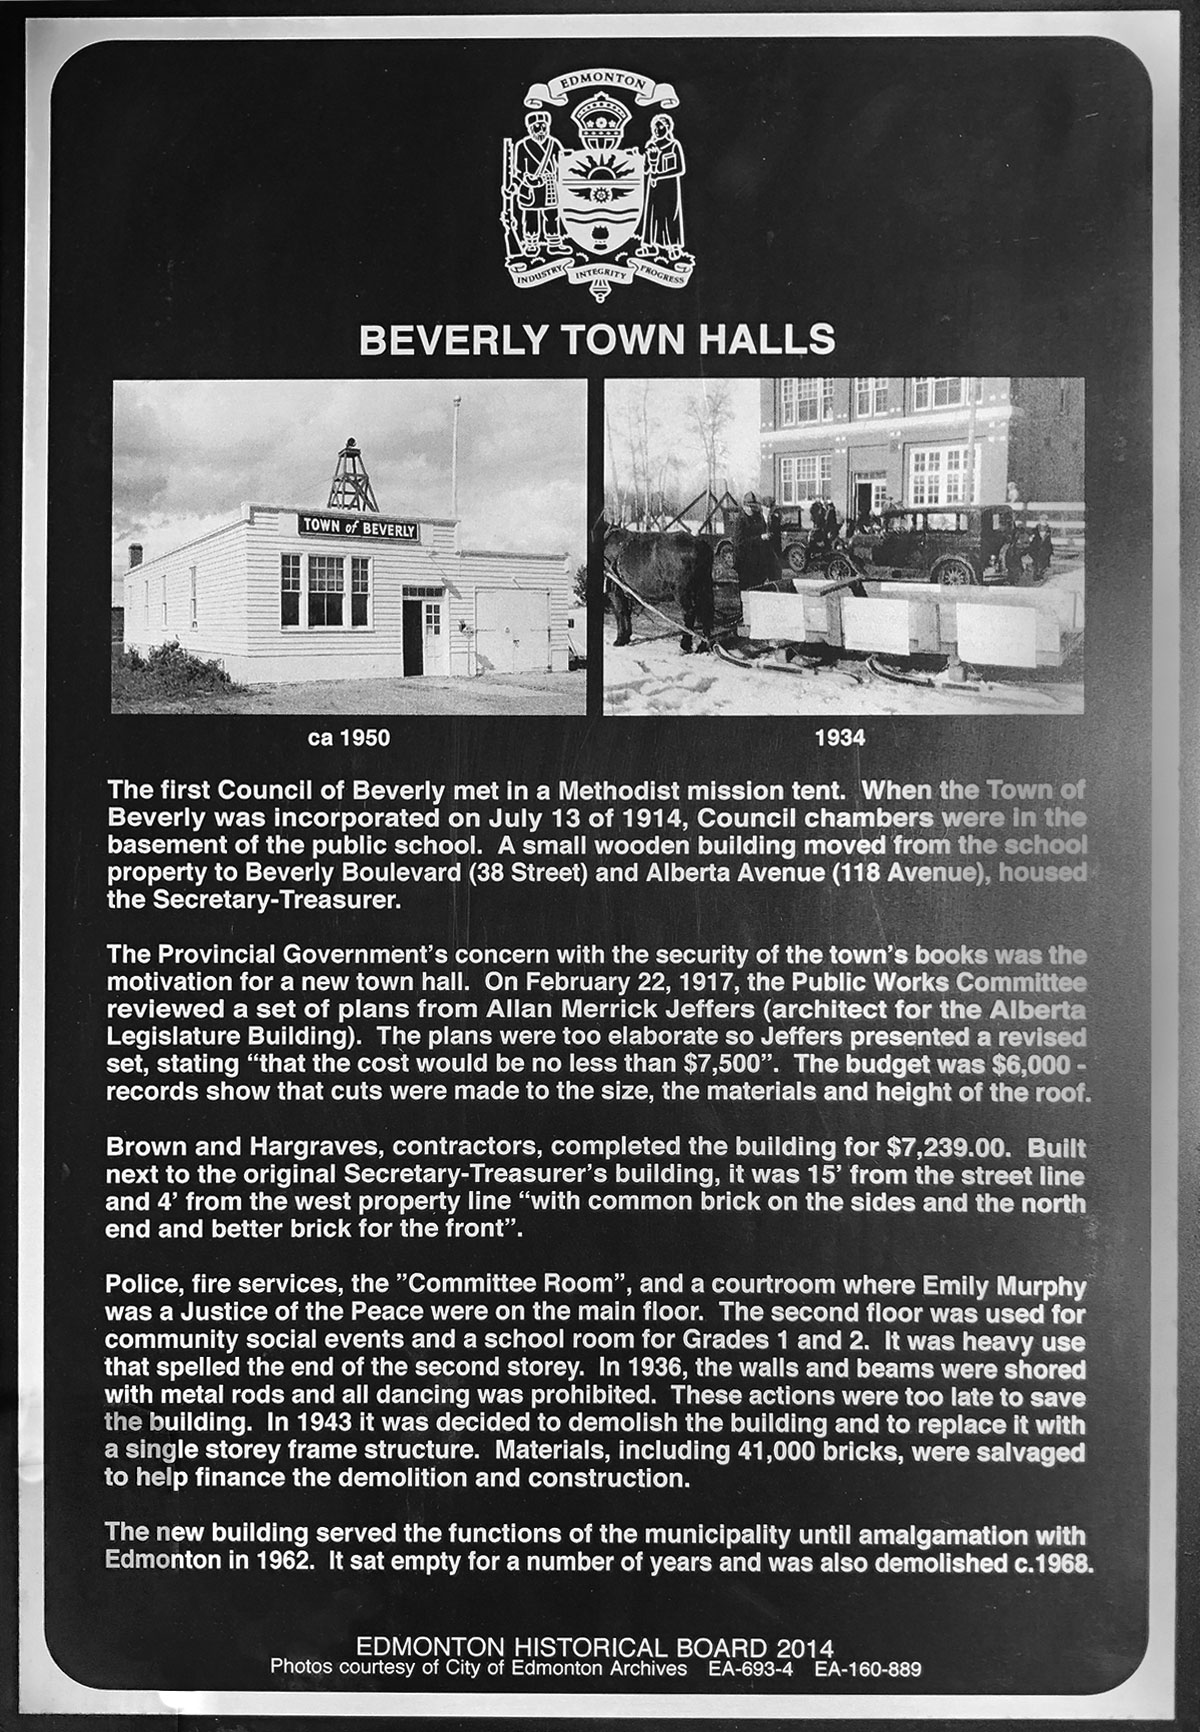 Beverly town halls